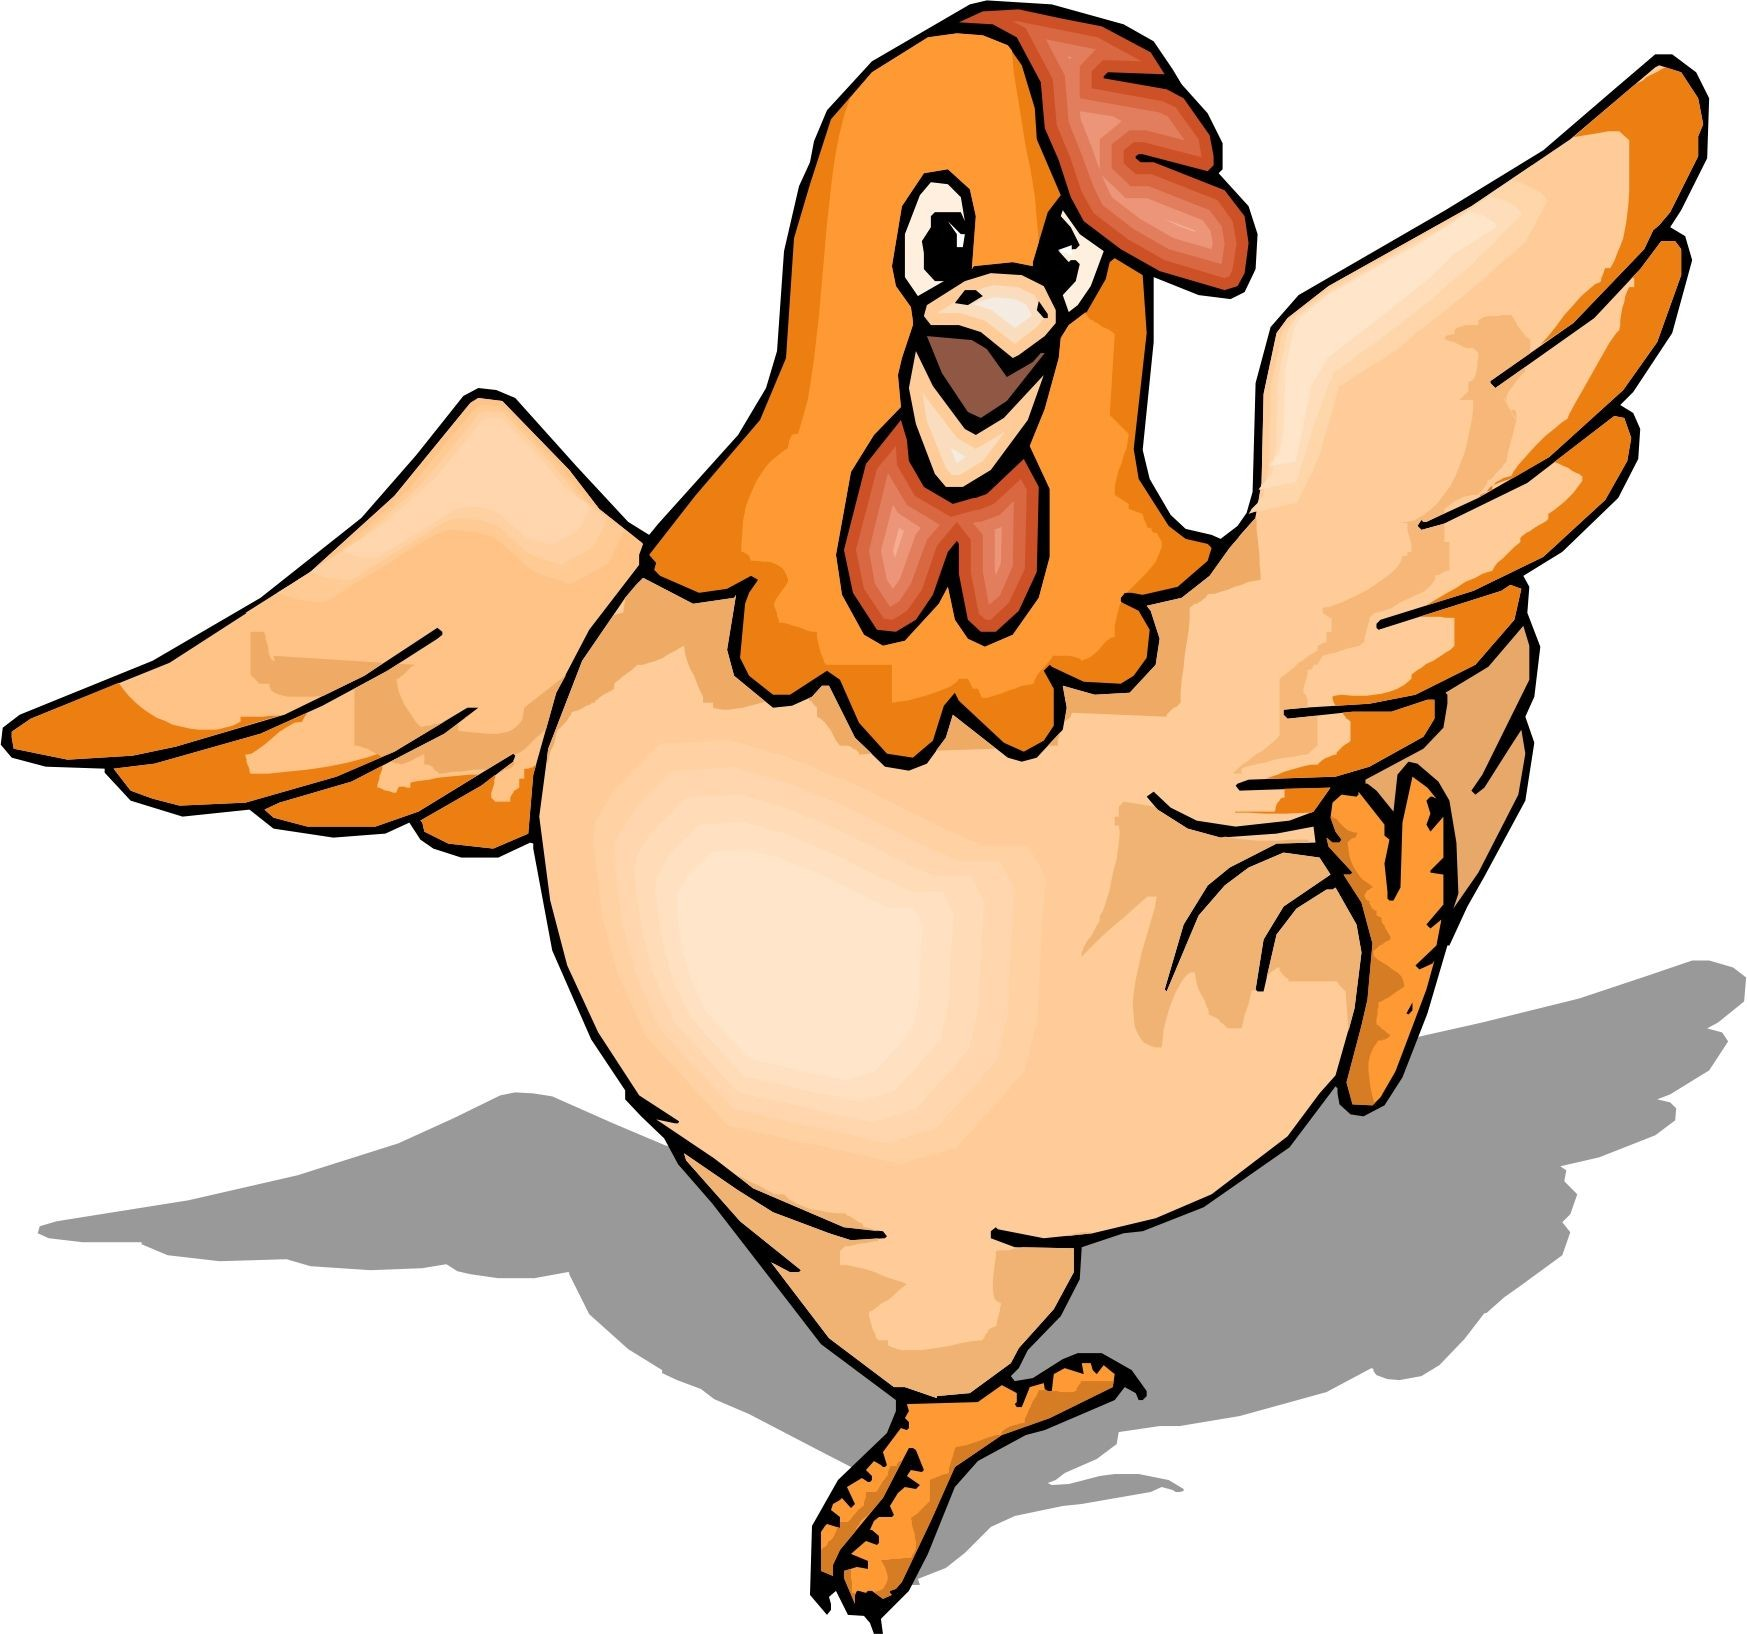 Coloring pages of a. Chicken clipart orange chicken